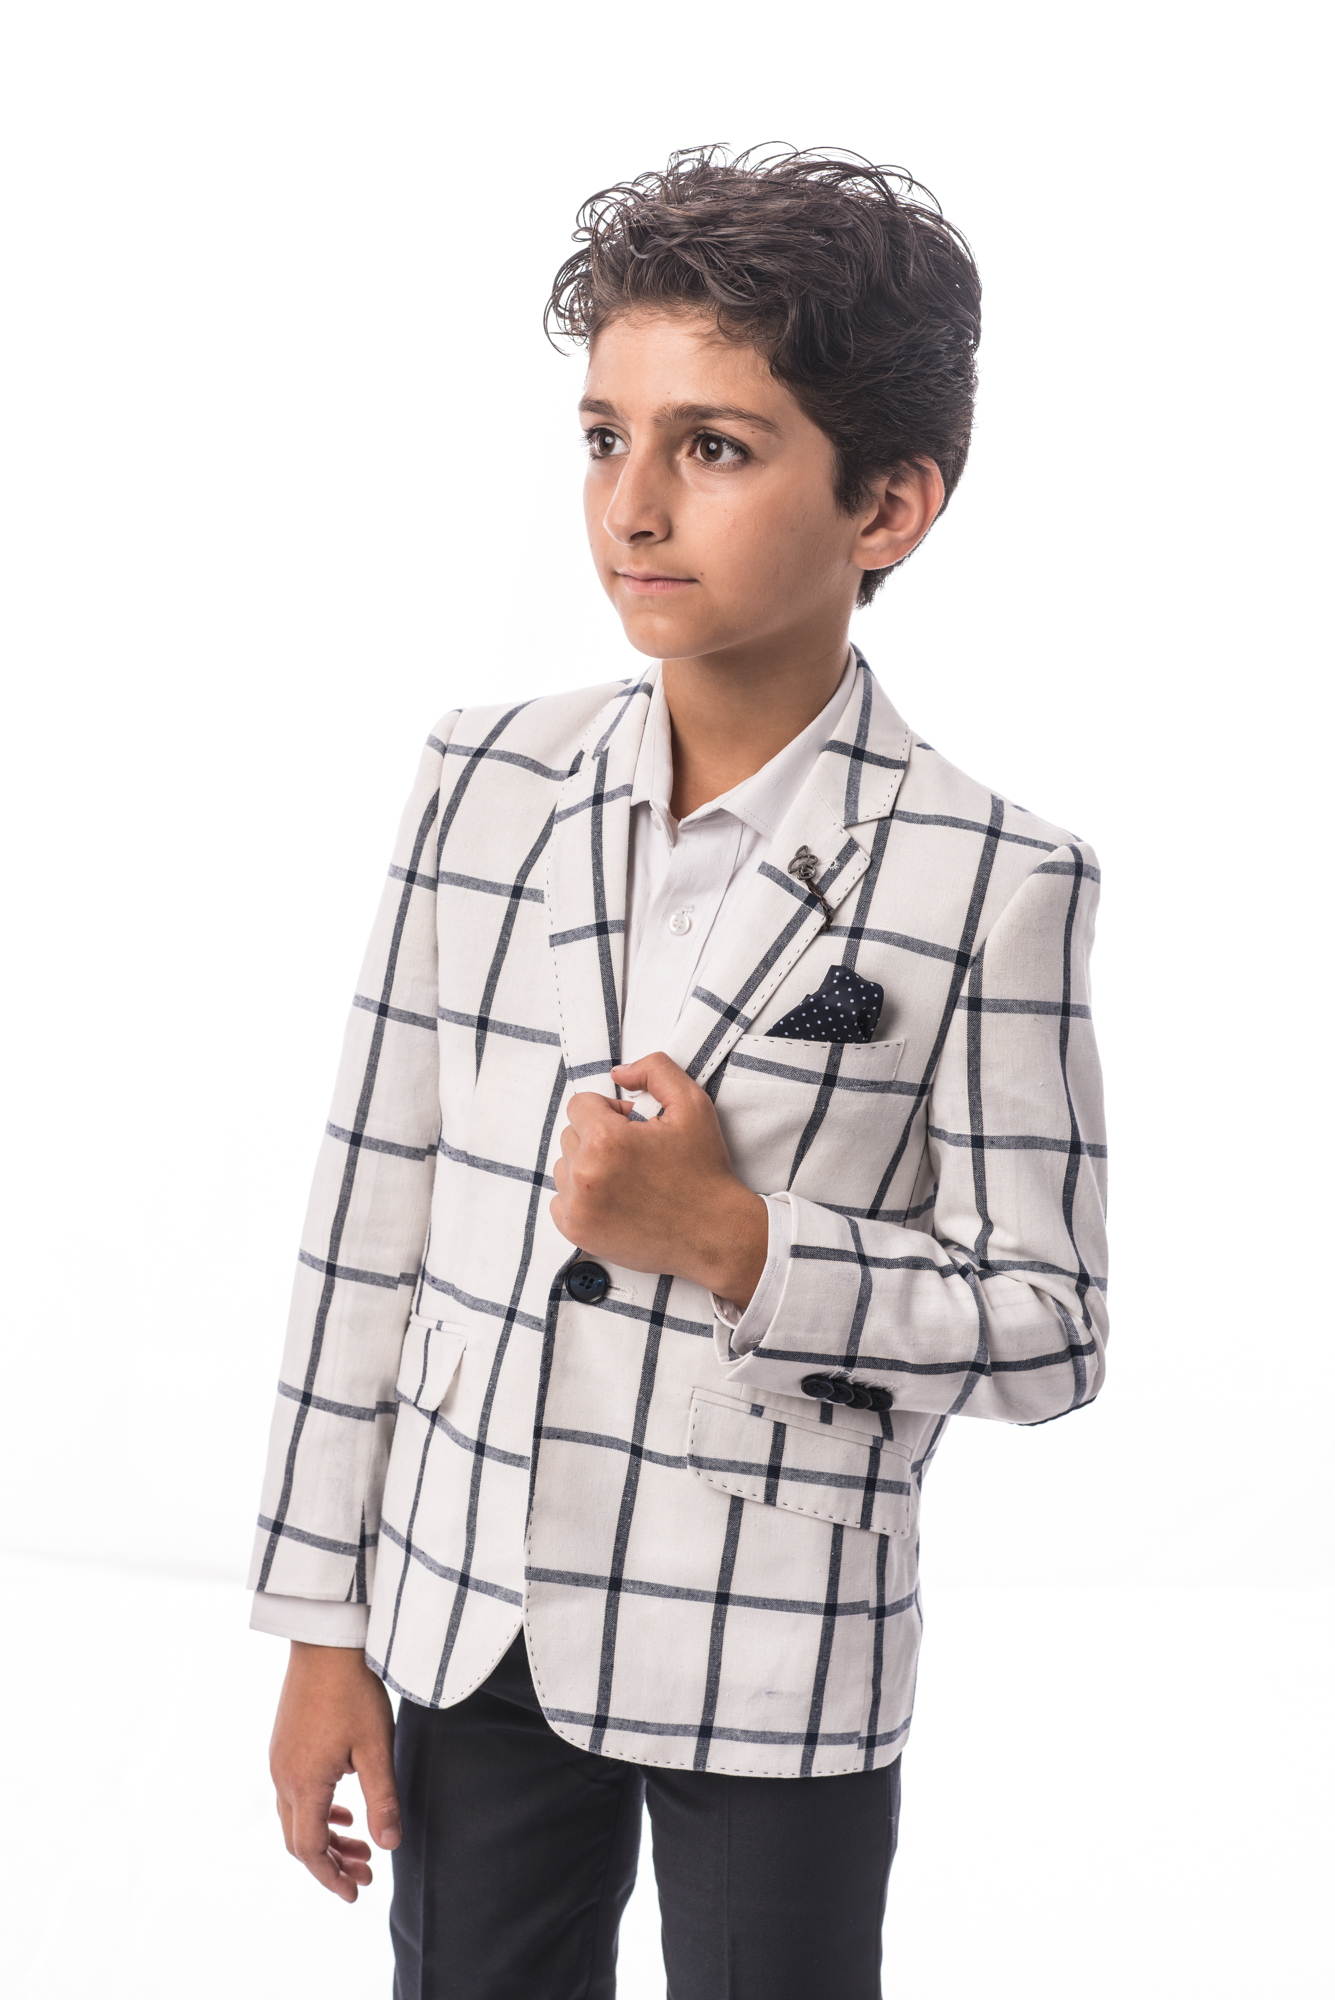 Big Checkerboard Boys Blazers / Sports Coat Jacket EBBS1710B